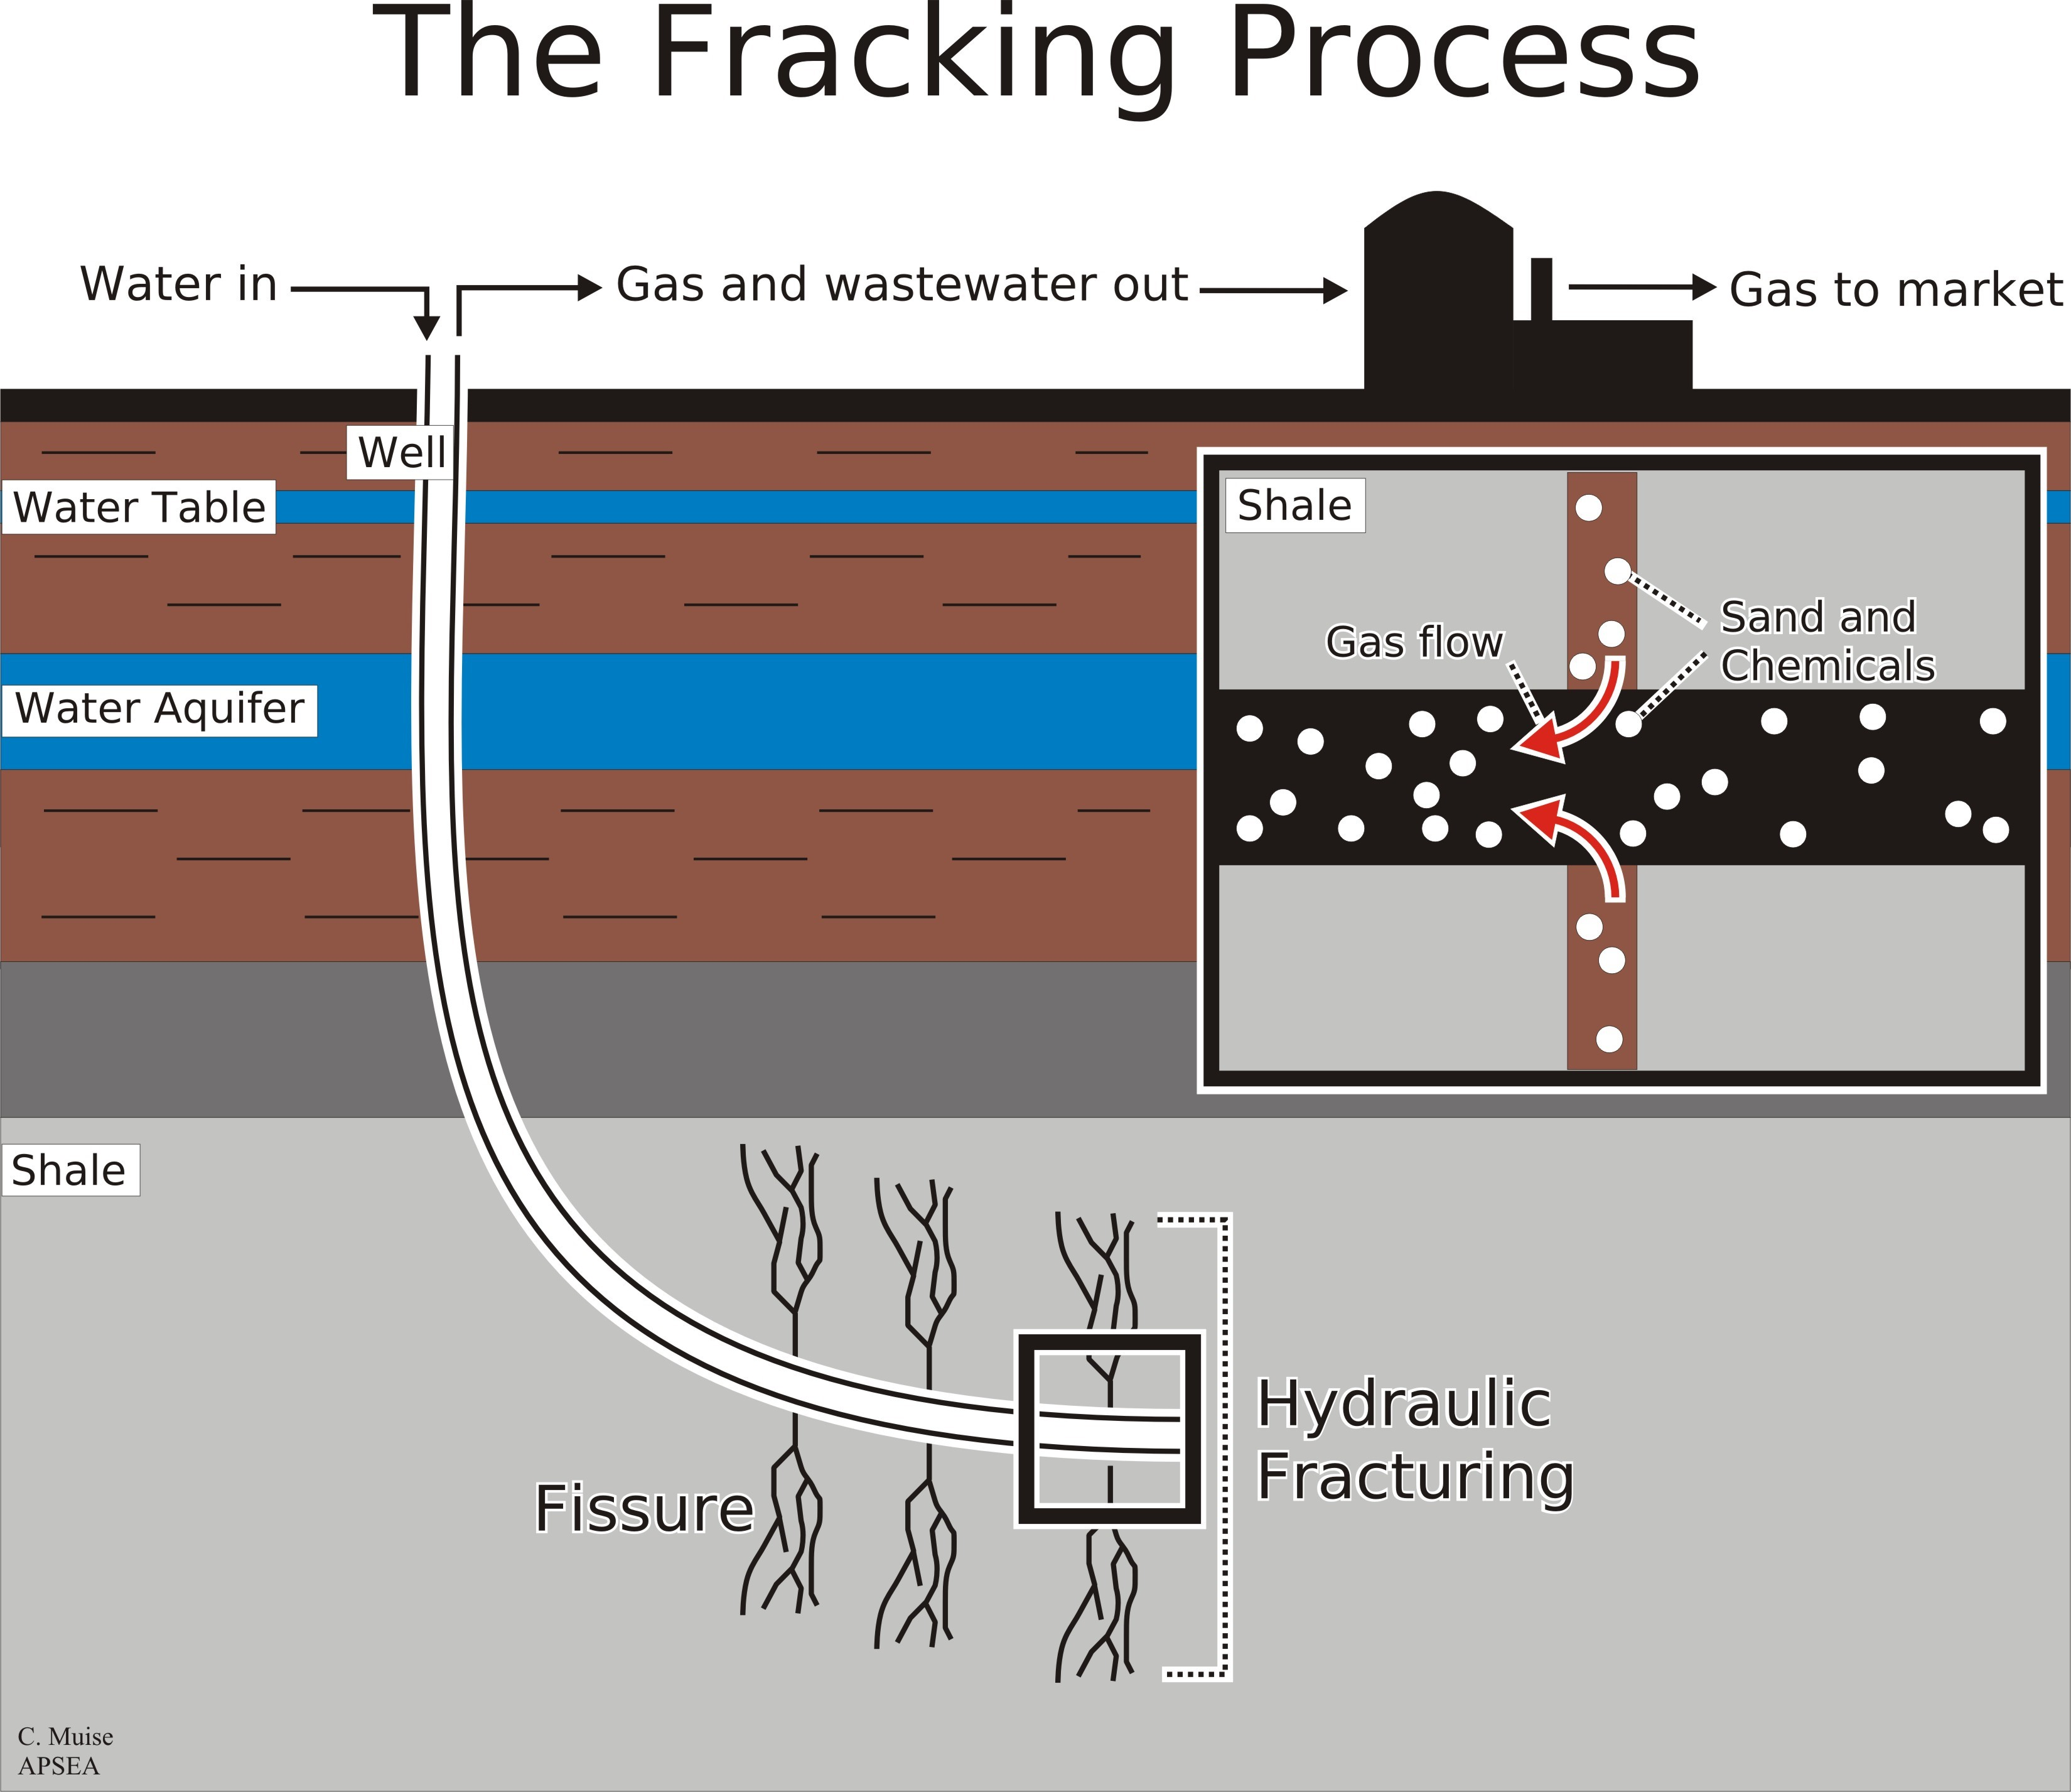 steps in the fracking process Fracking is a three-step process gas companies first drill a well, then frack it,  then harvest the gas, says david blackmon, who works for a gas.